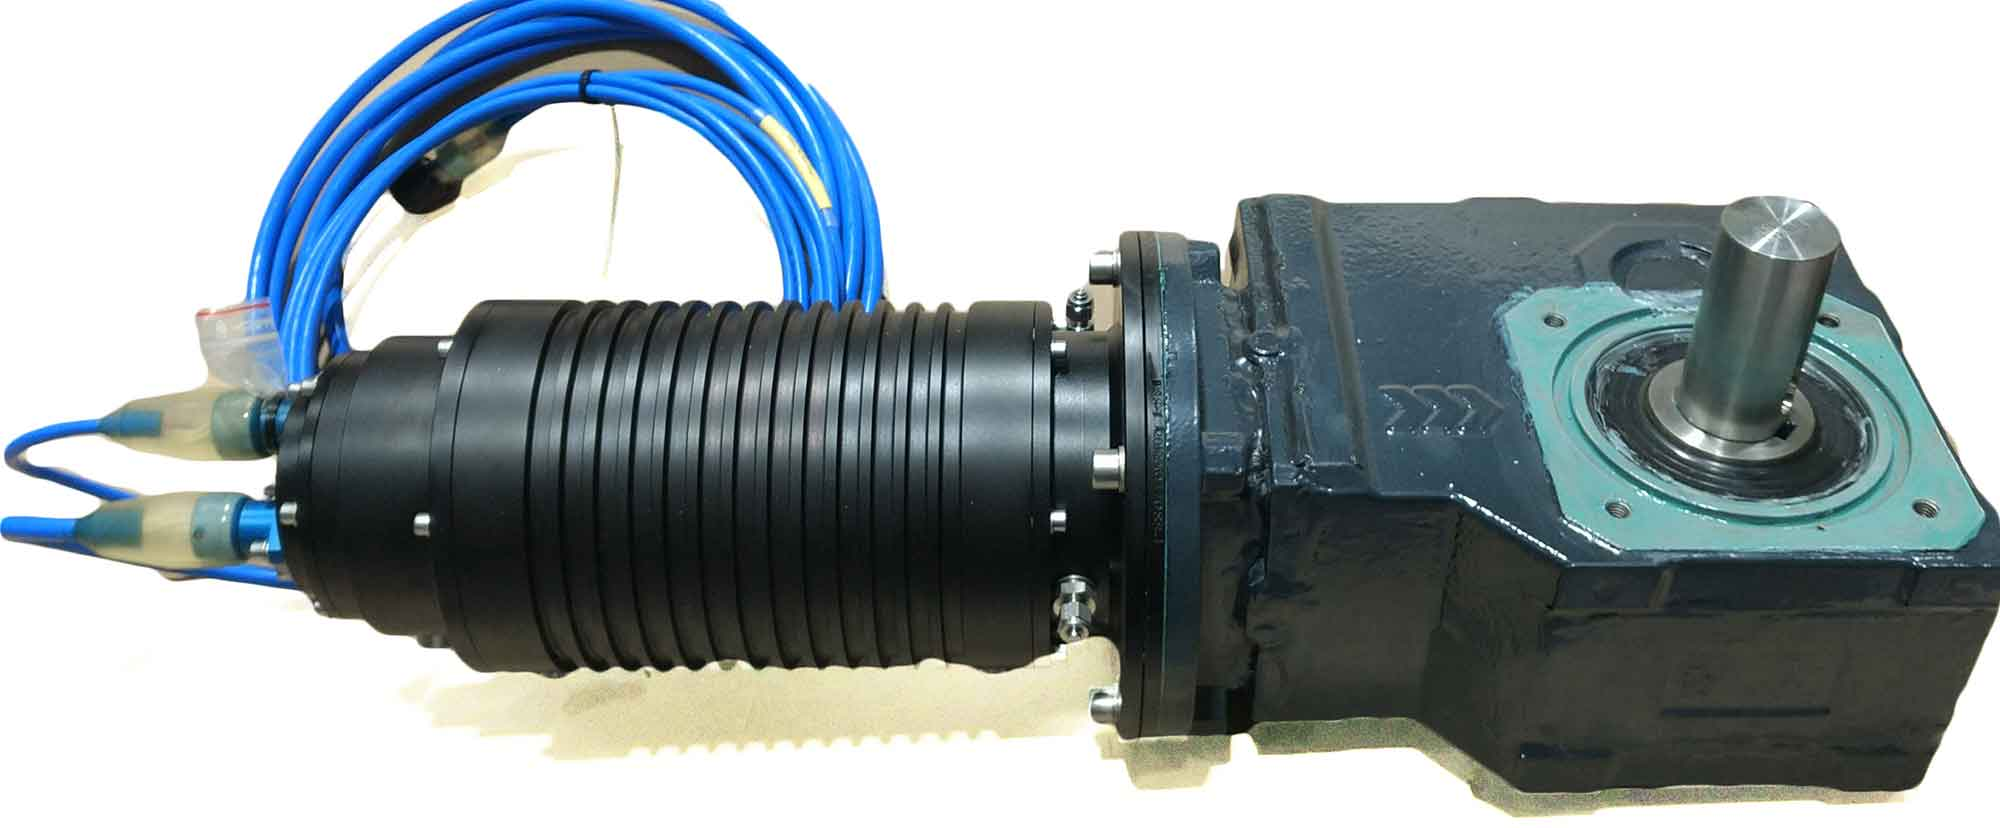 Electric motor 3phase 400VAC for subsea use produced by Depro AS with white background.